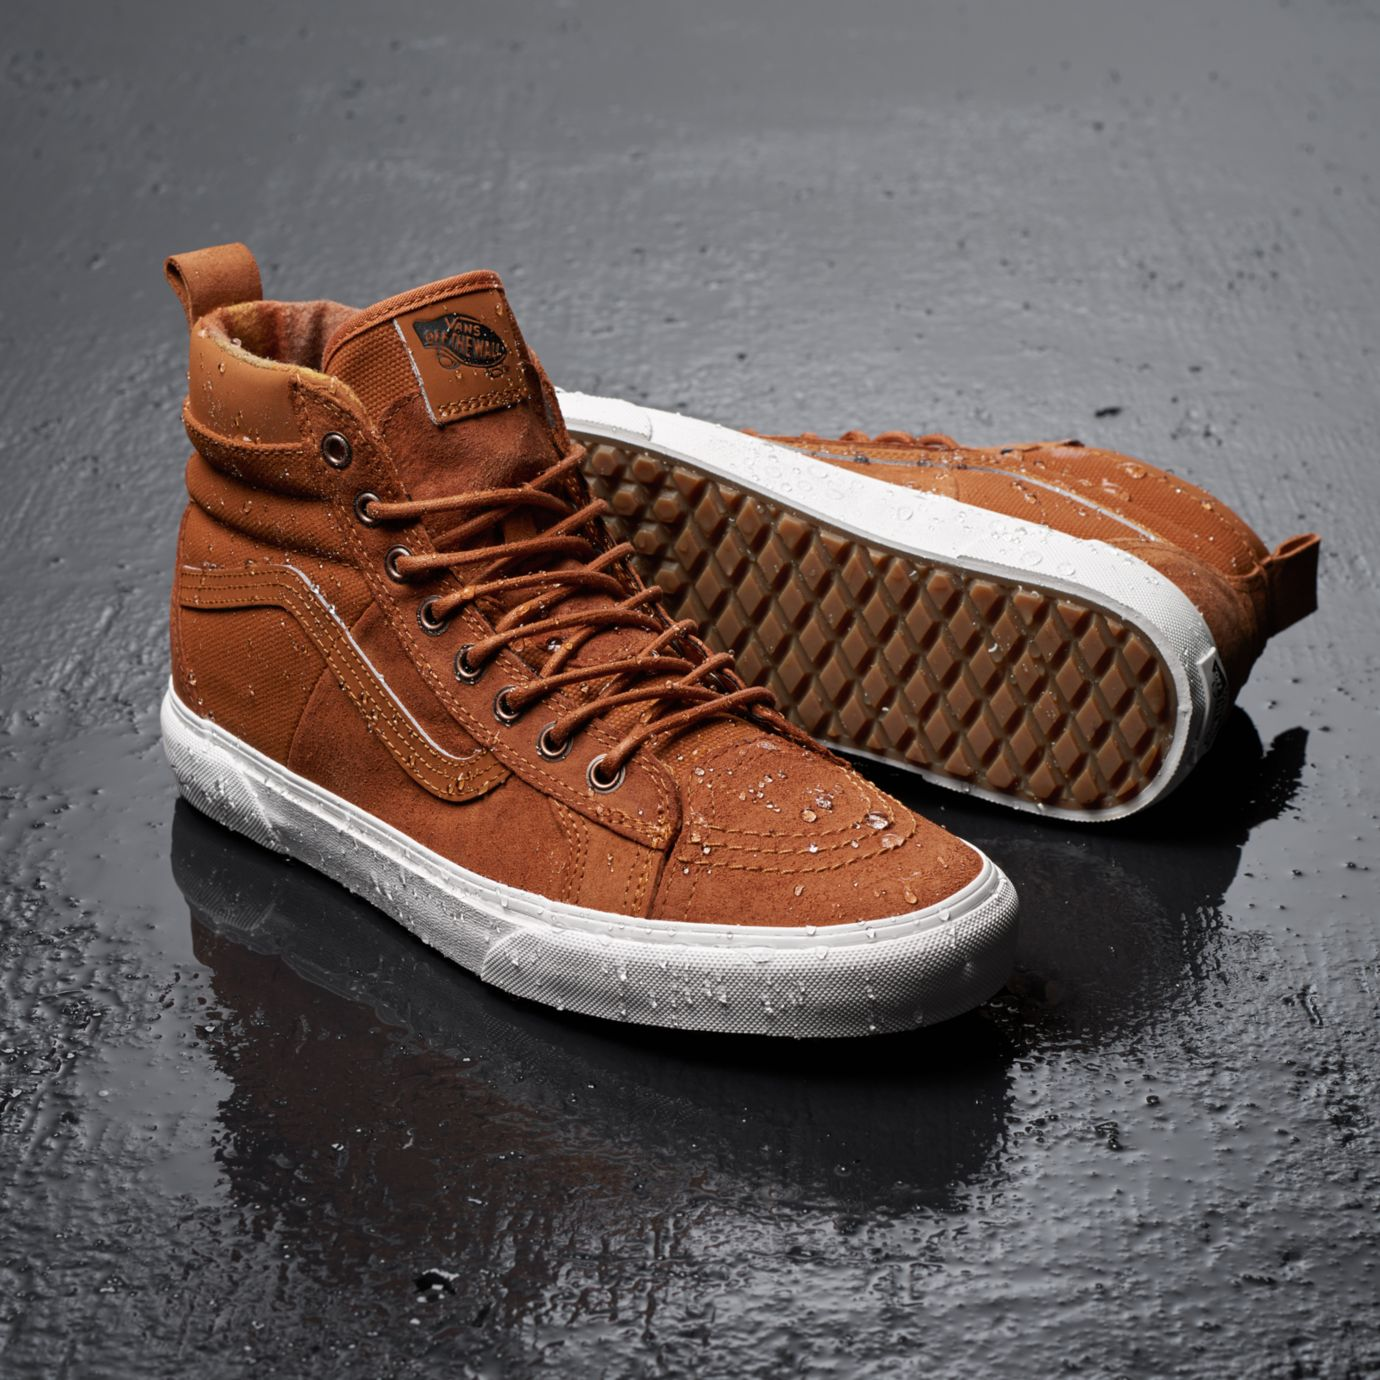 5b018624e6 All Weather MTE Footwear and Apparel Collection